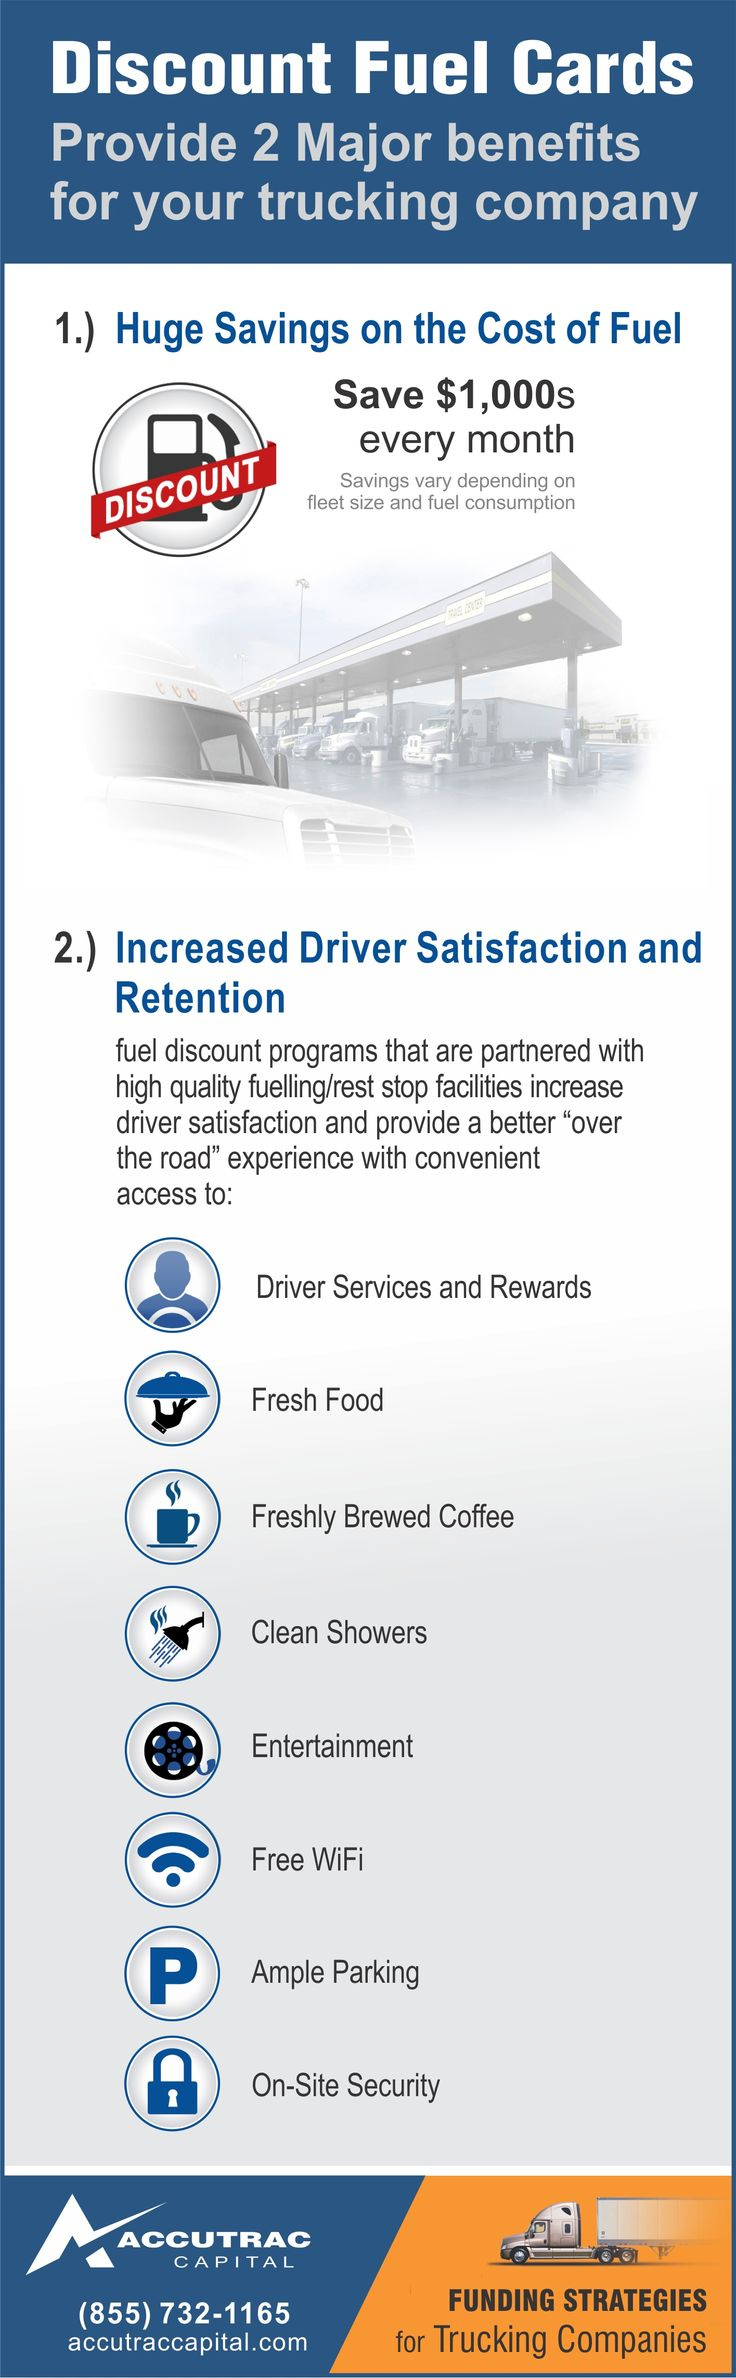 Discount Fuel Cards 2 Major Benefits For Your Trucking Company Finance Blog Small Business Funding Cards